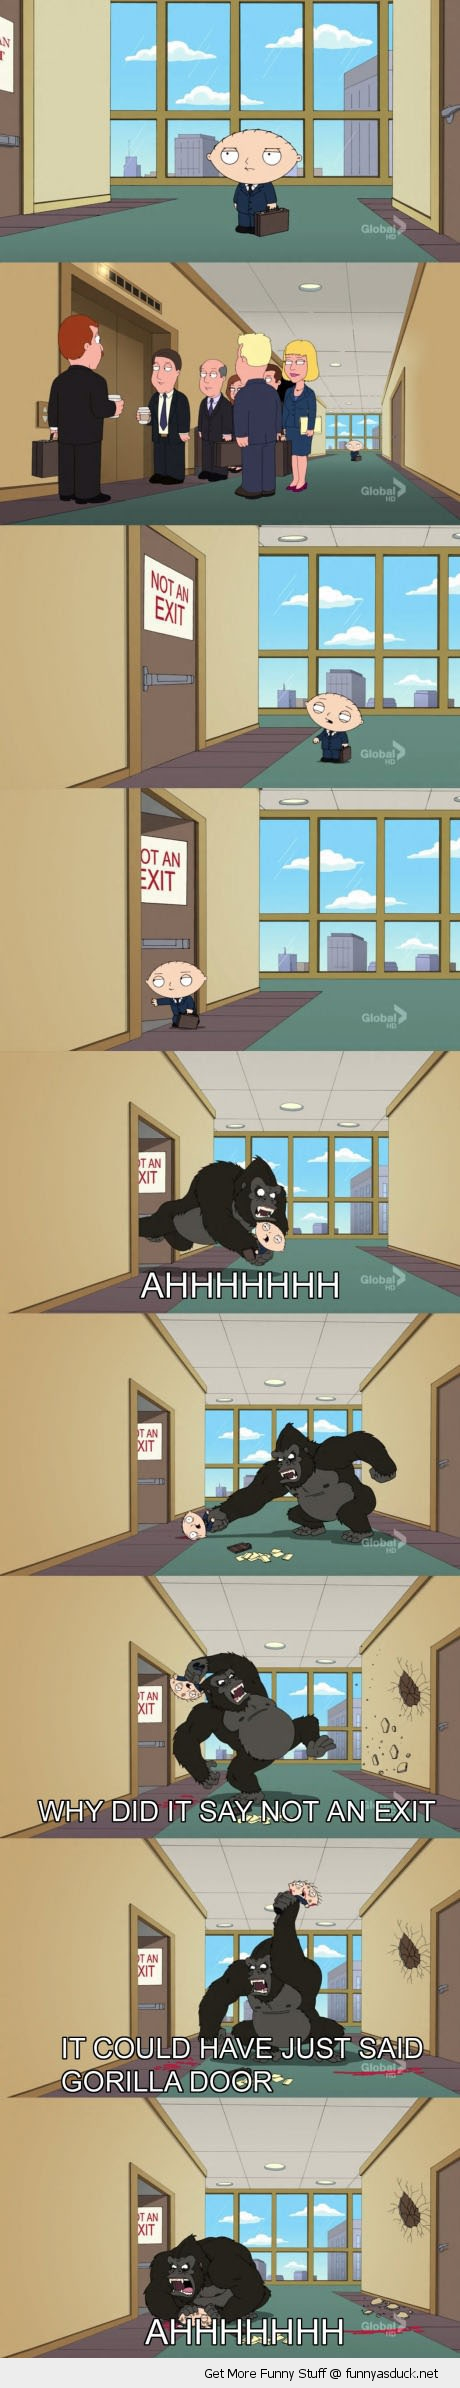 family guy stewie no exit gorilla door tv scene funny pics pictures pic picture image photo images photos lol